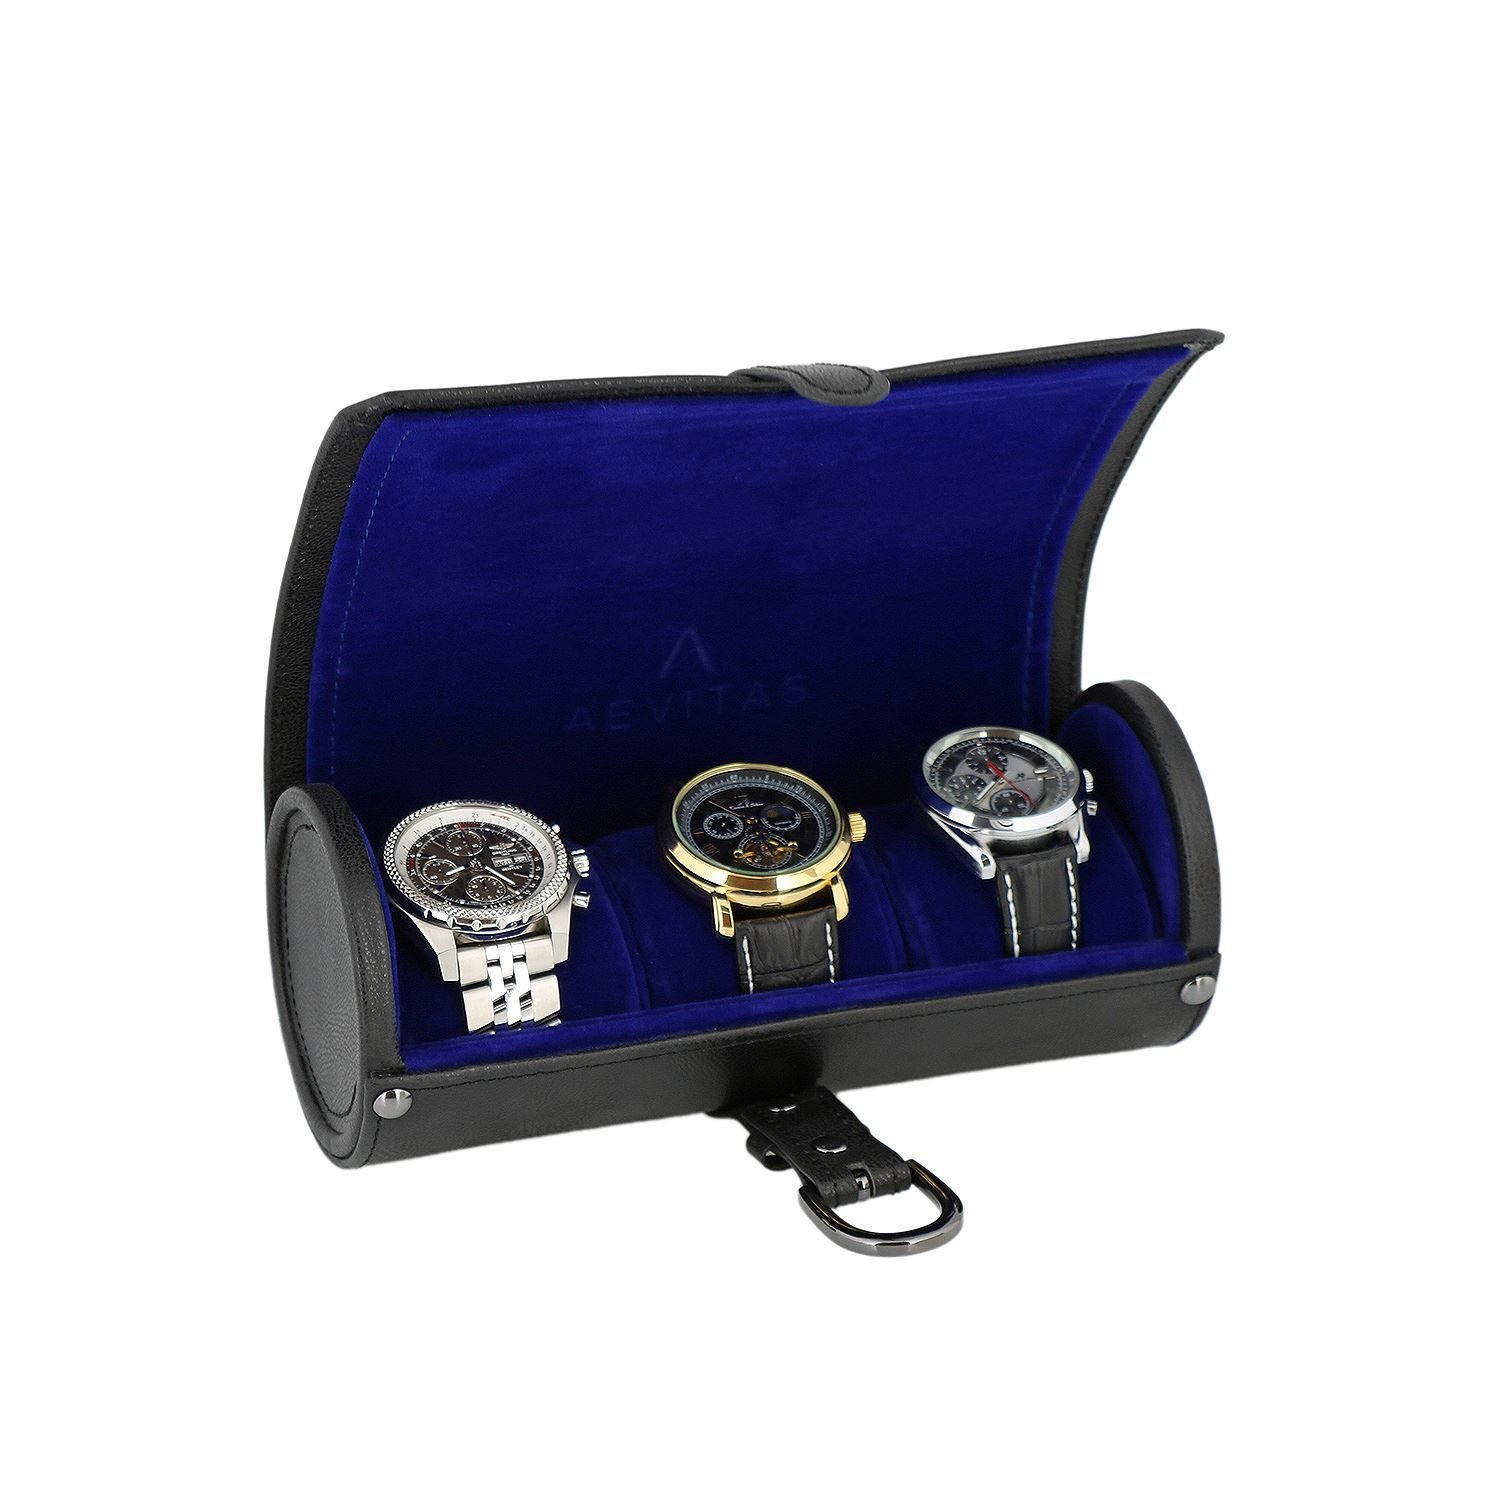 Genuine Black Leather Watch Travel Roll 3 Watches Purple Velvet Lining by Aevitas